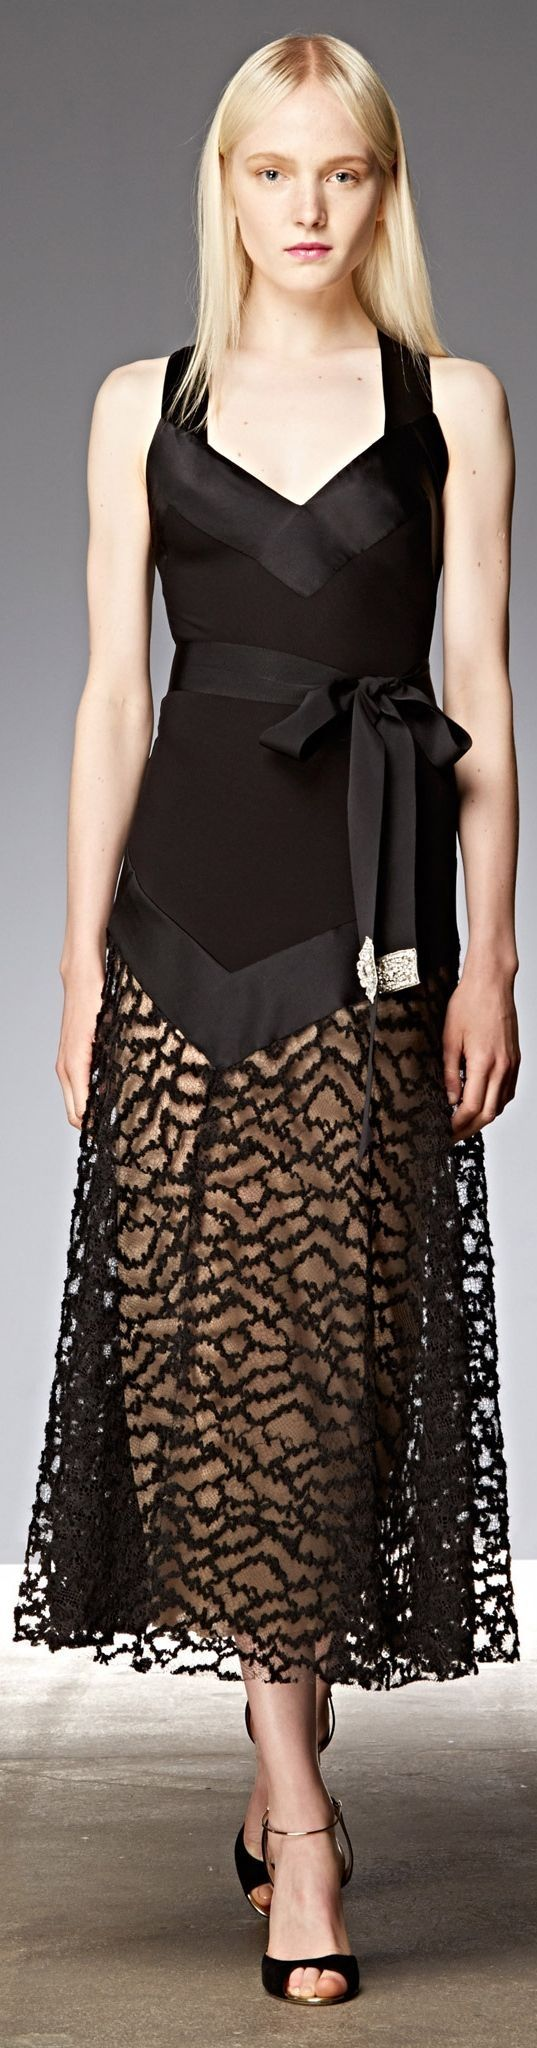 Dress The Best! Designer Dresses Fashion Trends Donna Karan Resort 2015